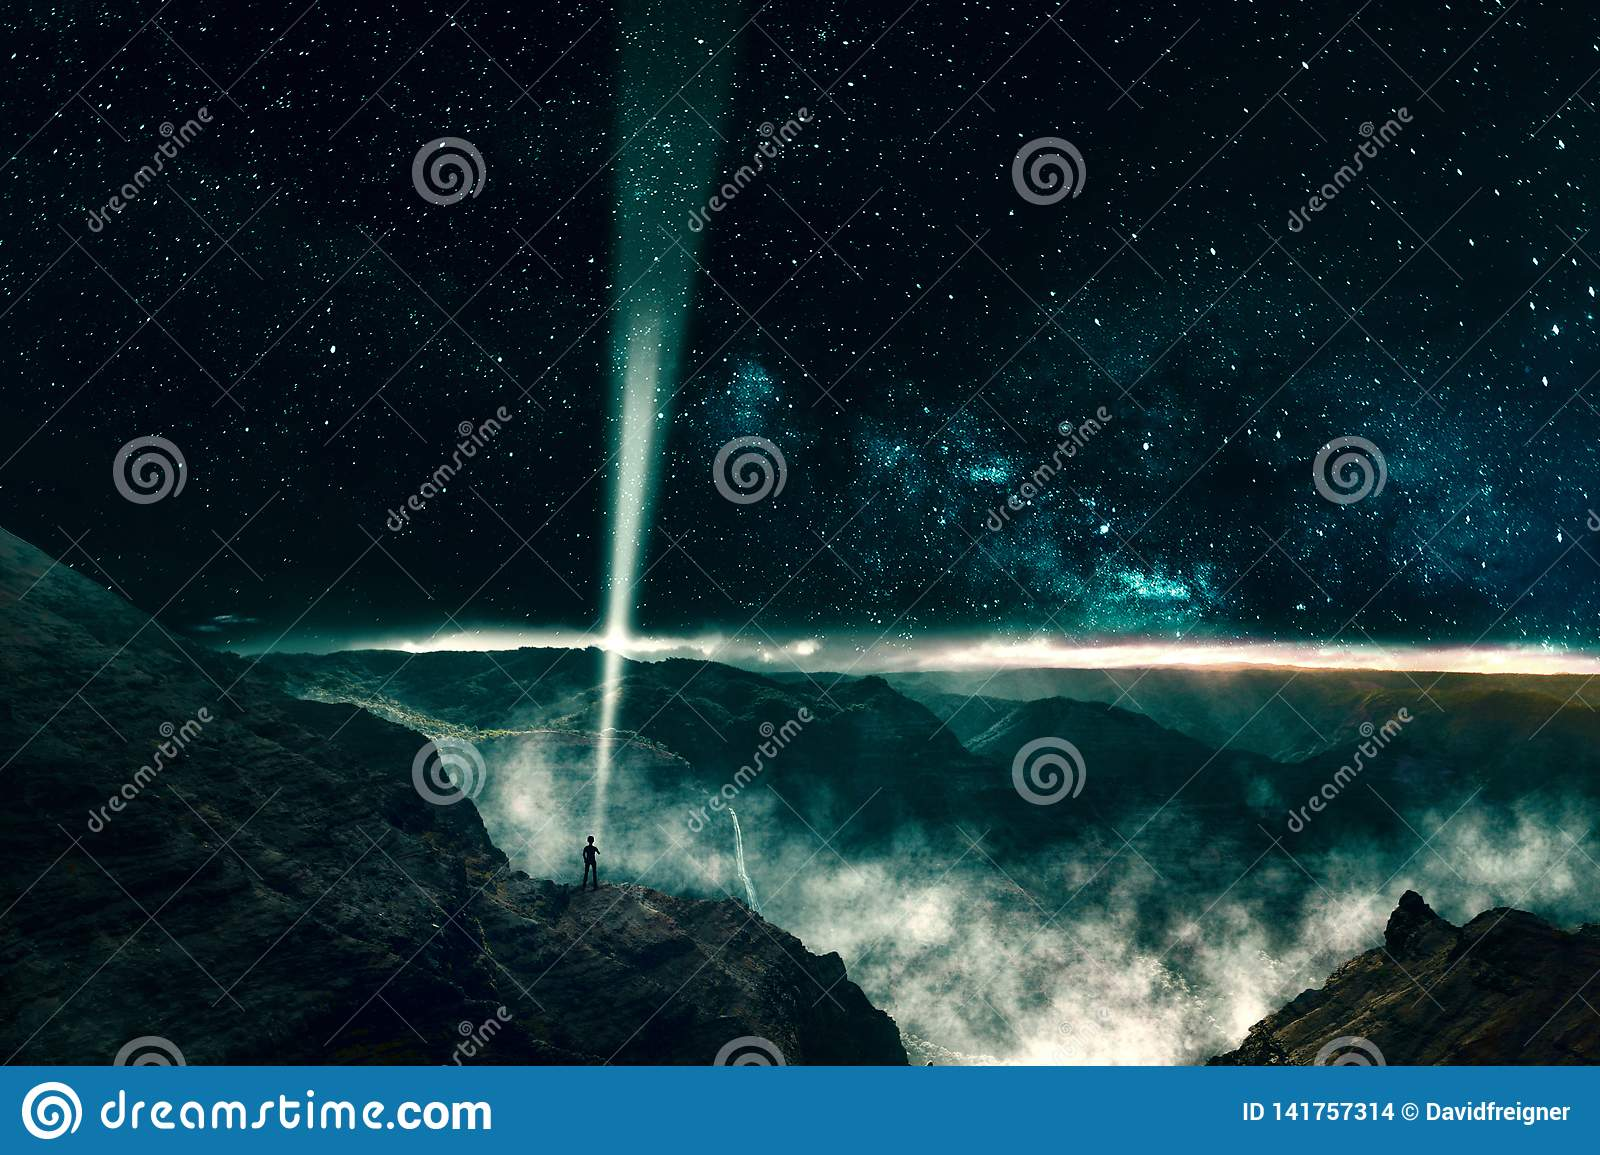 One person sending a light beam signal into outer space. Concept for astronomy, science and technology